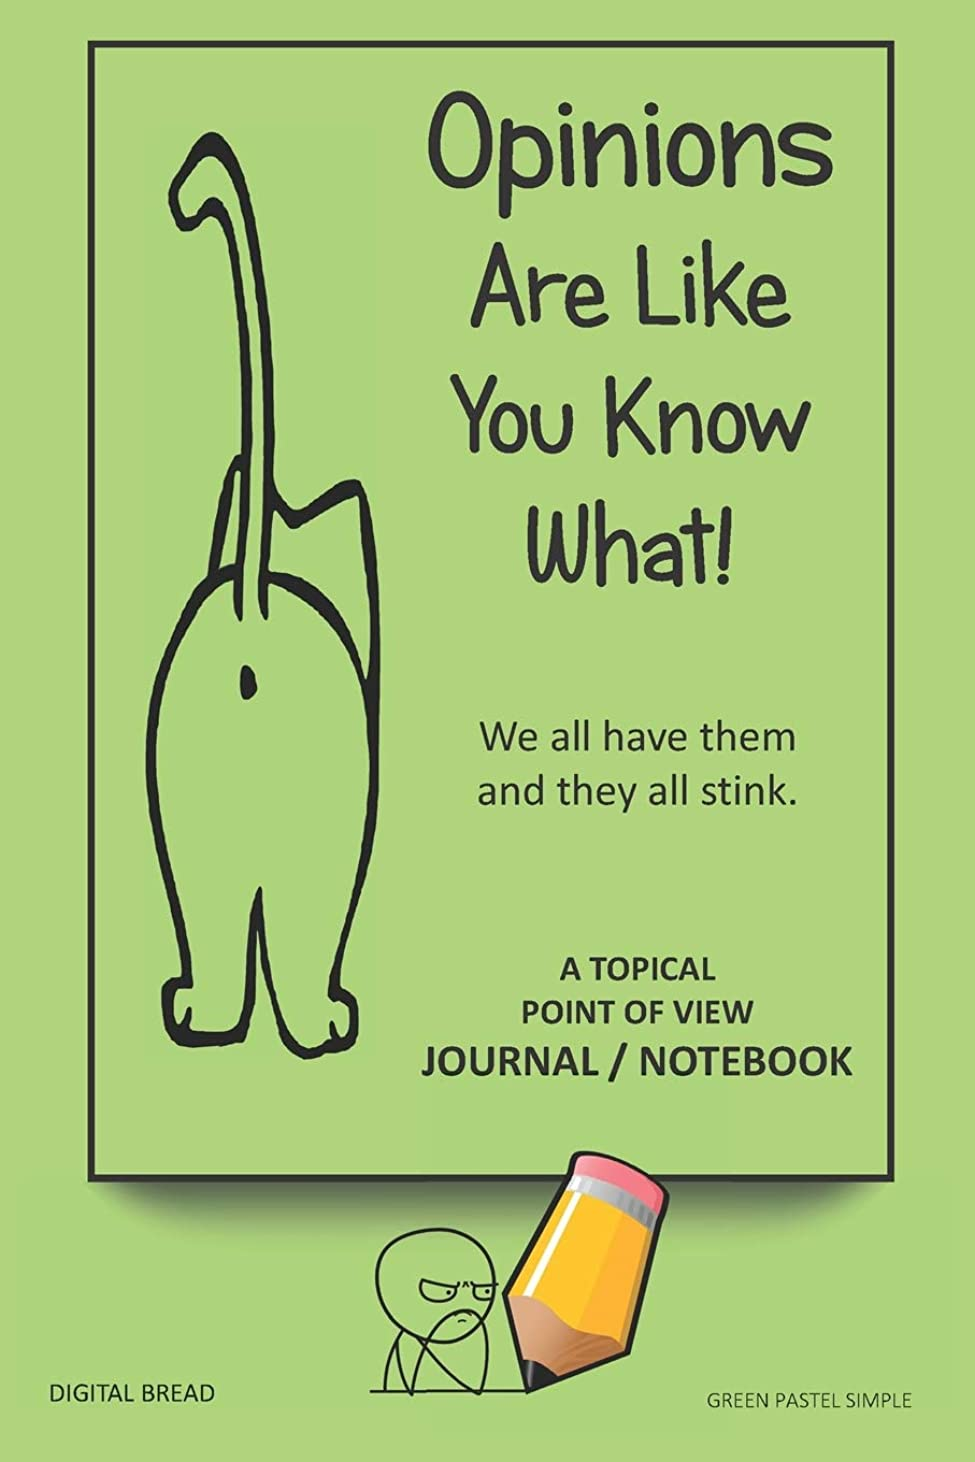 別れるガス虚弱A Topical Point of View JOURNAL NOTEBOOK: Opinions Are Like You Know What! We all have them and they all stink. Record Your Point of View on Topics That Are Important. GREEN PASTEL SIMPLE